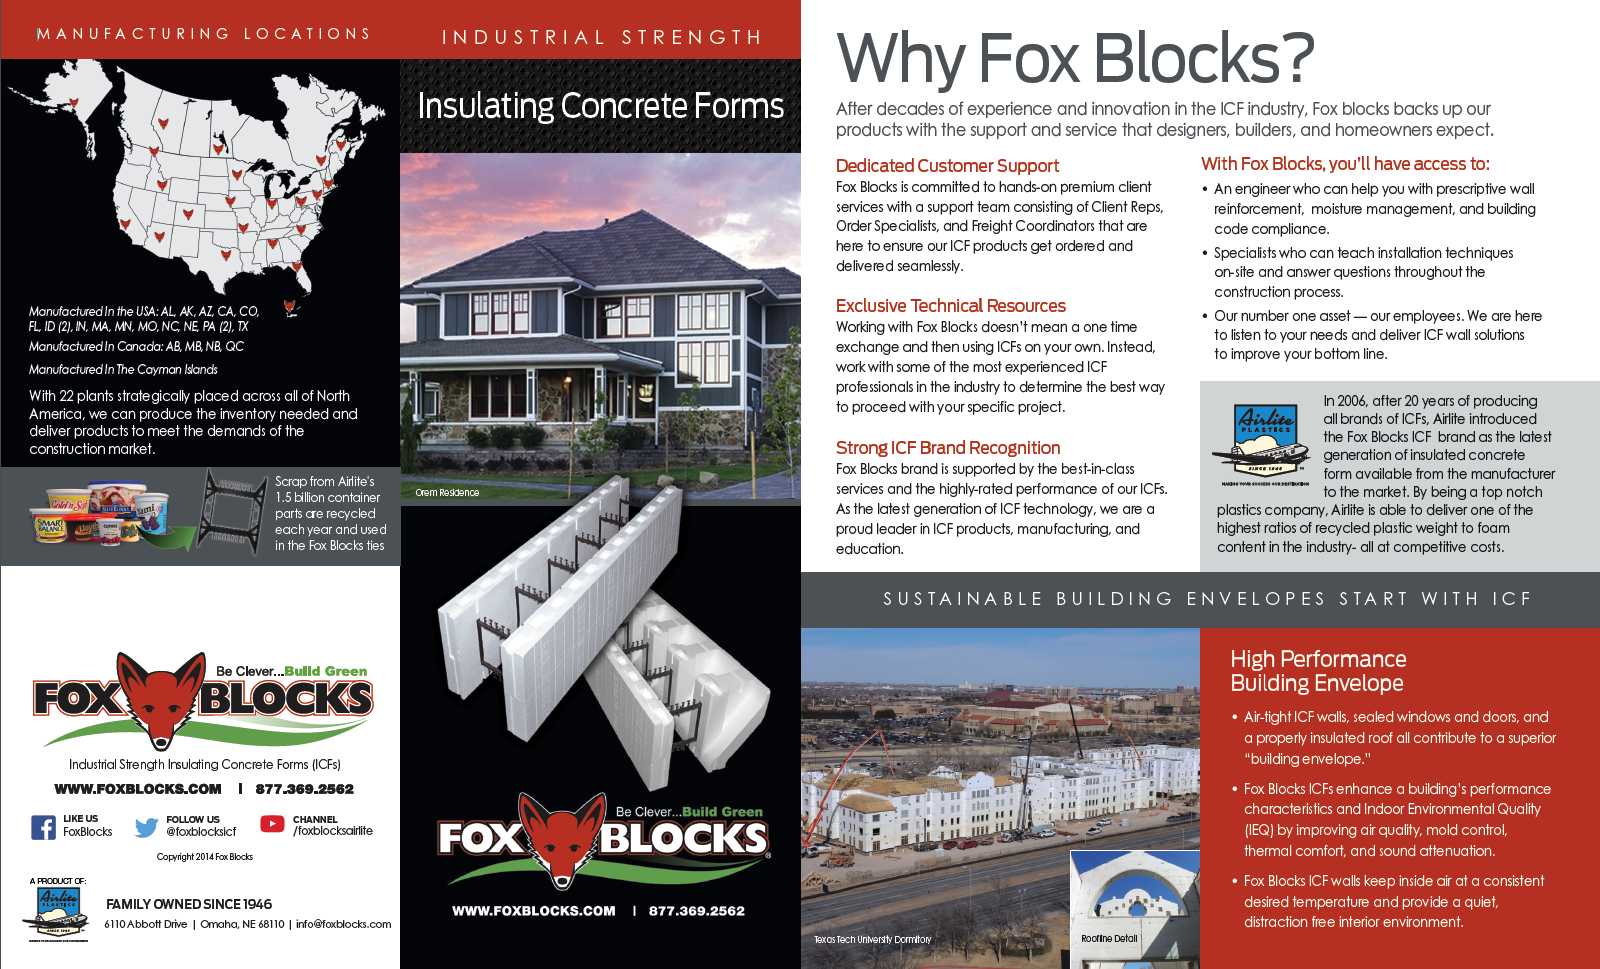 Insulated Concrete Forms (ICF) and why we use them